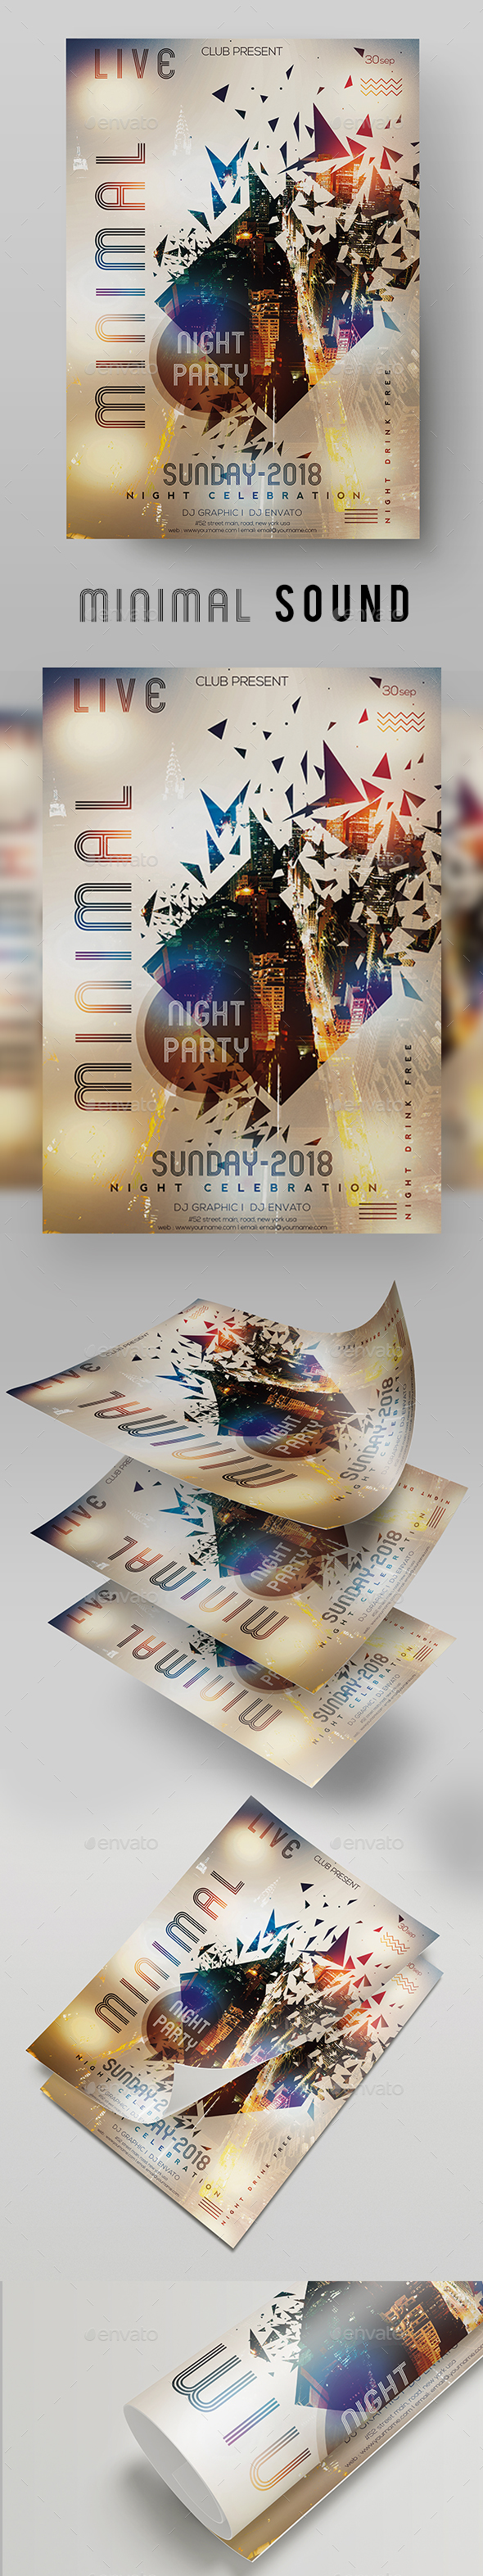 GraphicRiver Minimal Sound DJ Party Poster Flyer Templates 20622685